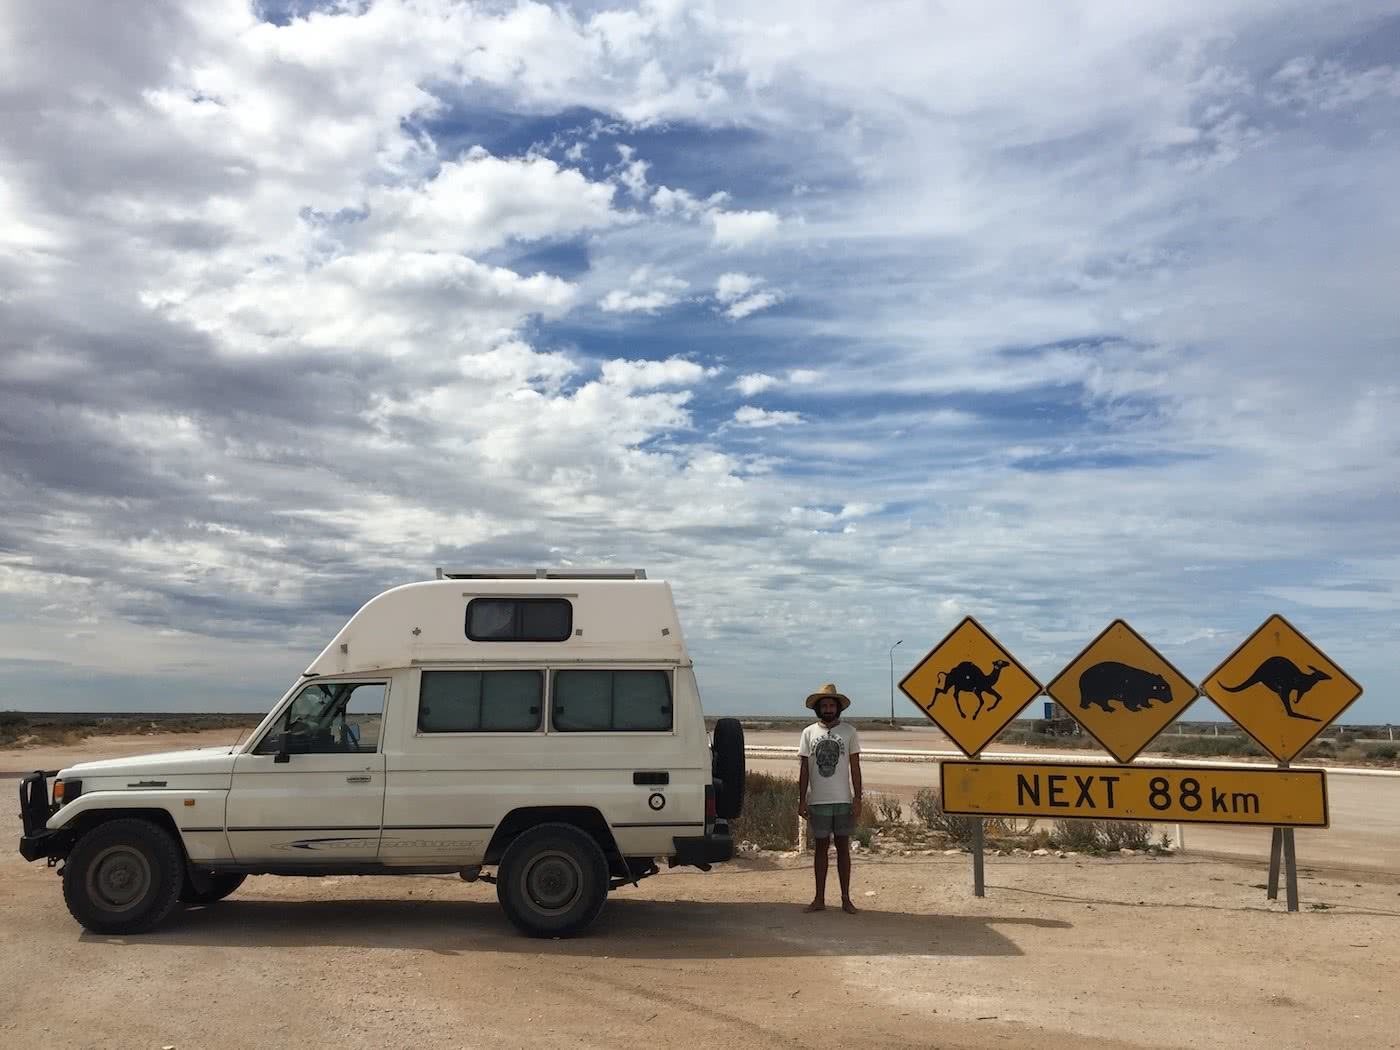 Troopy Travels // Chasing Sunsets From Byron Bay To The Ningaloo Reef, Alice Forrest, Nullarbor Road, SA, signs, van, Kangaroo, outback, camel, wombat, wildlife, road trip